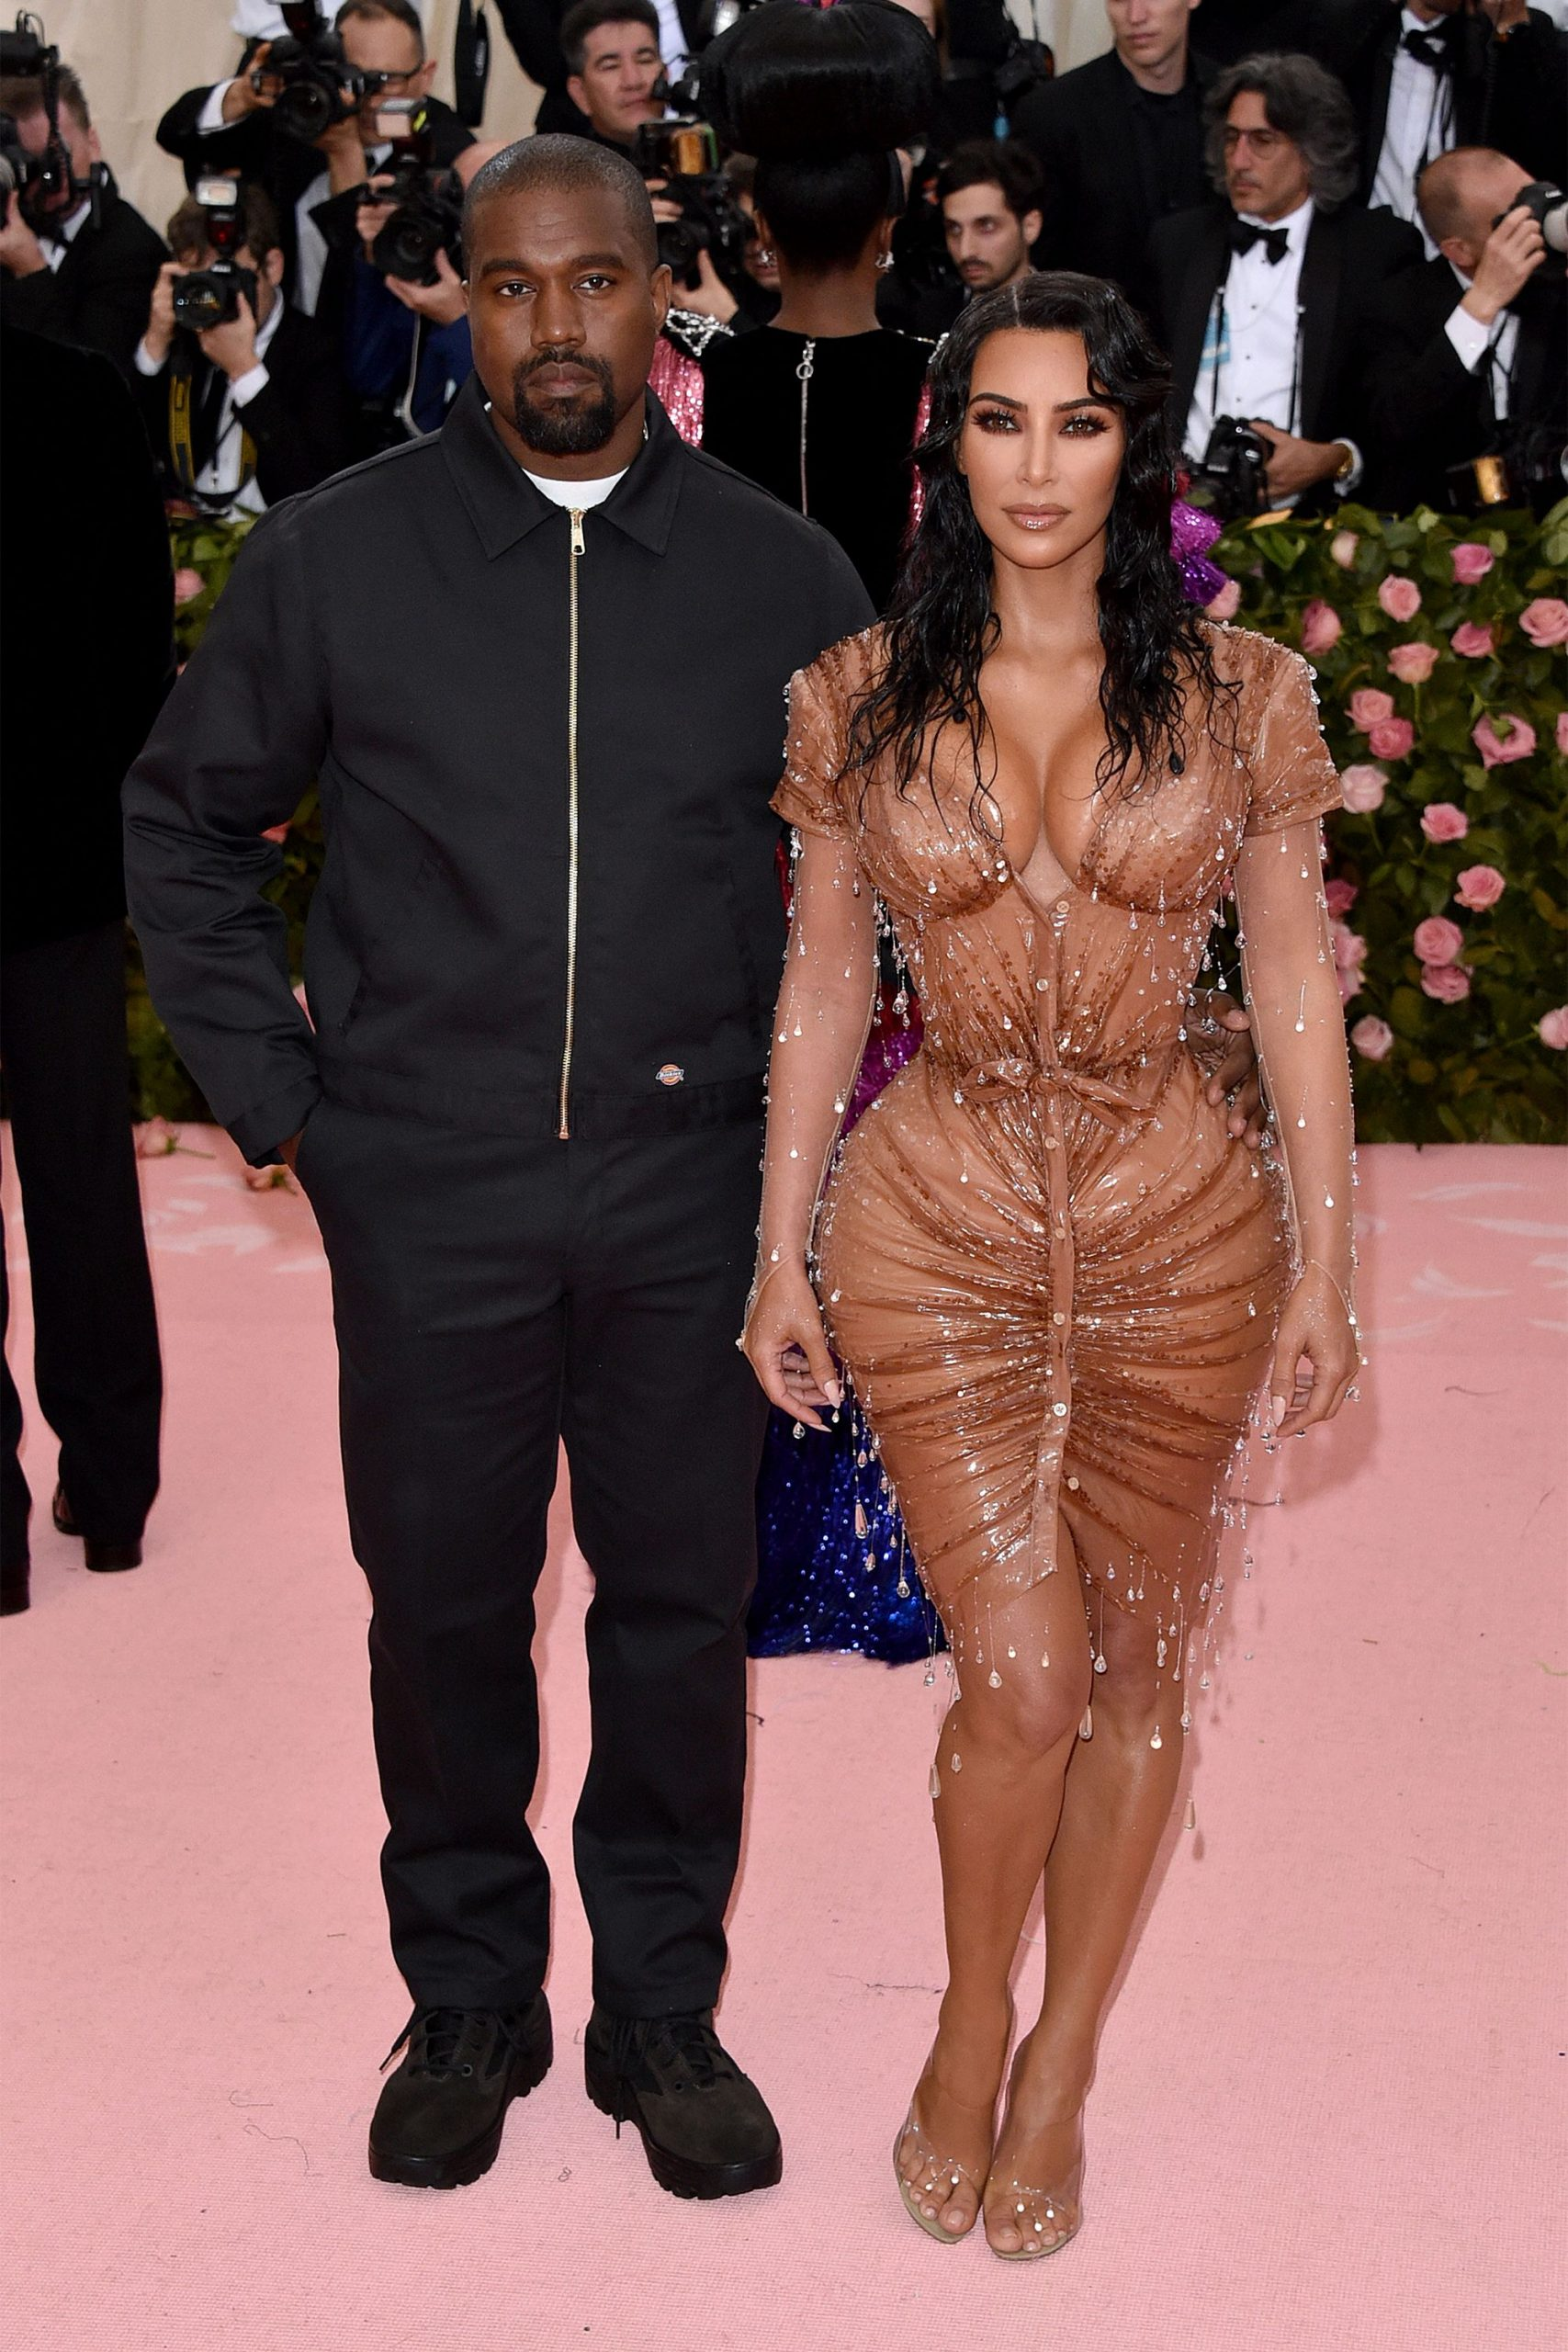 kanye-west-issues-an-apology-to-wife-kim-kardashian-over-recent-comments